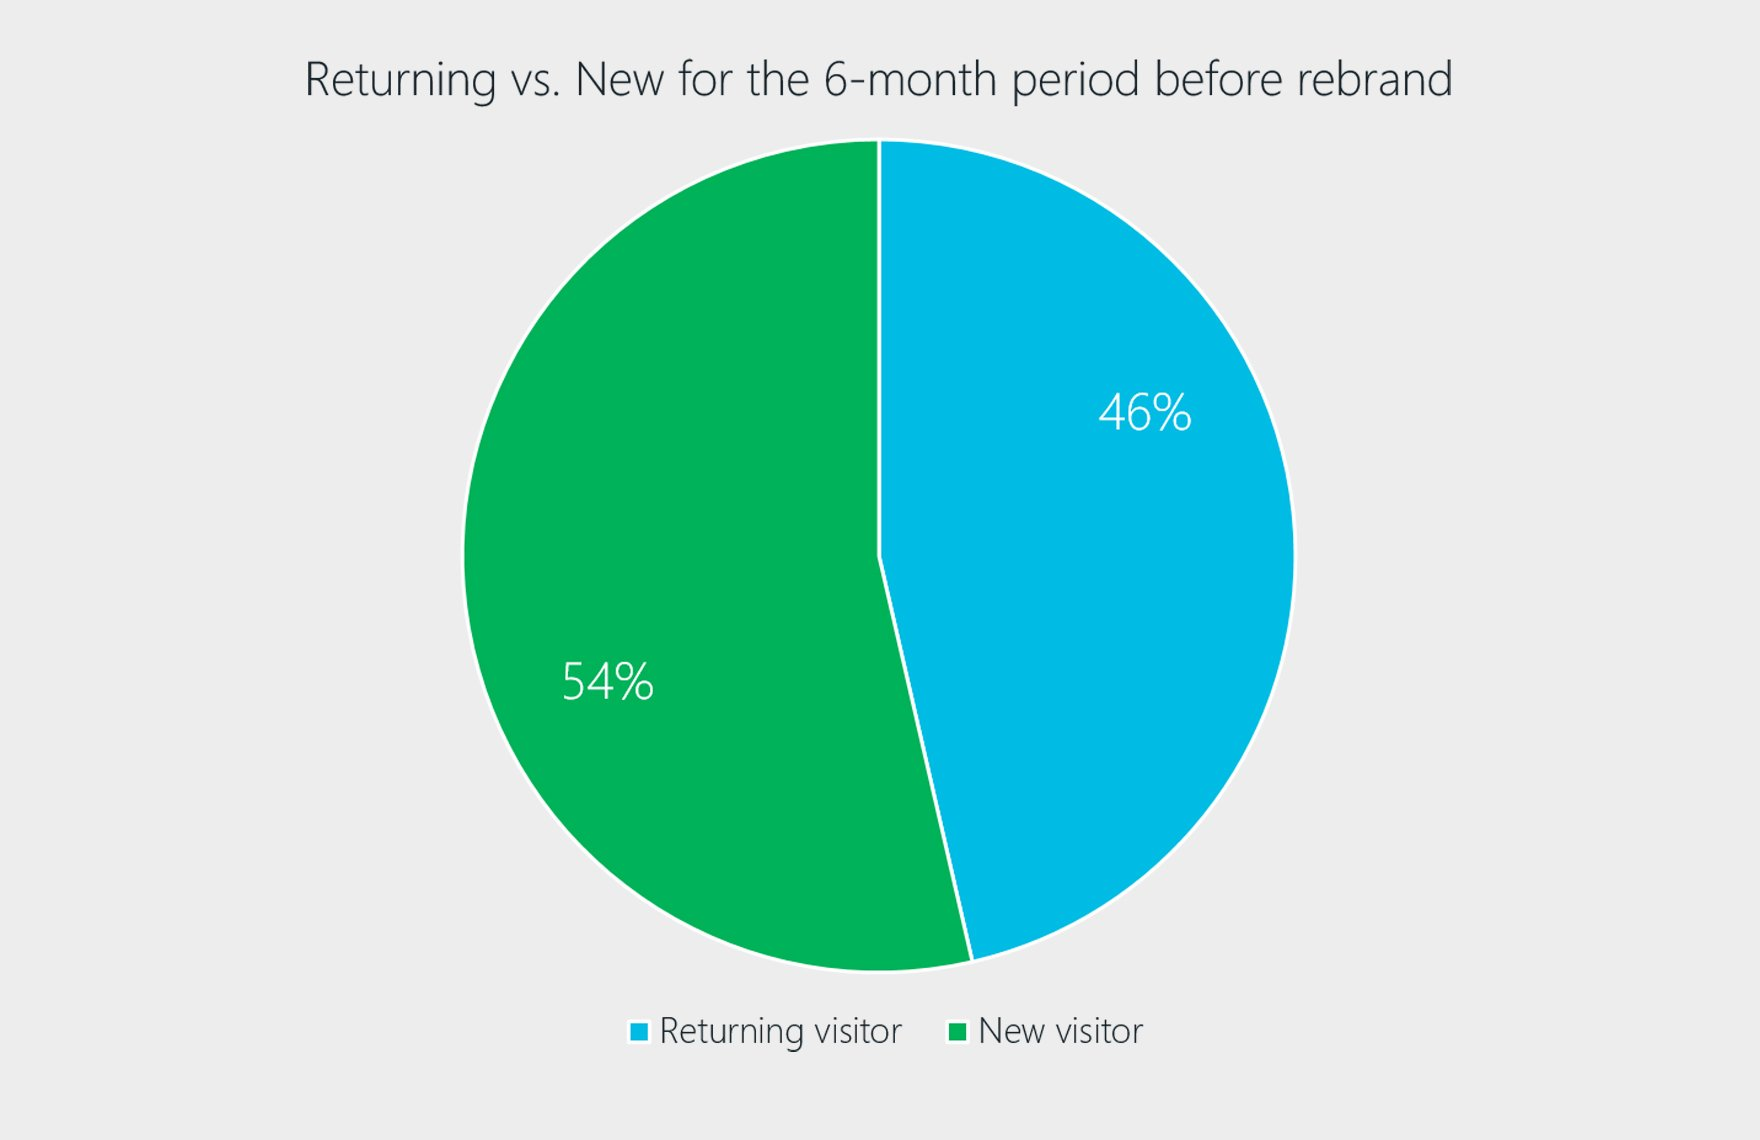 Returning vs New visitors for 6-month period chart.